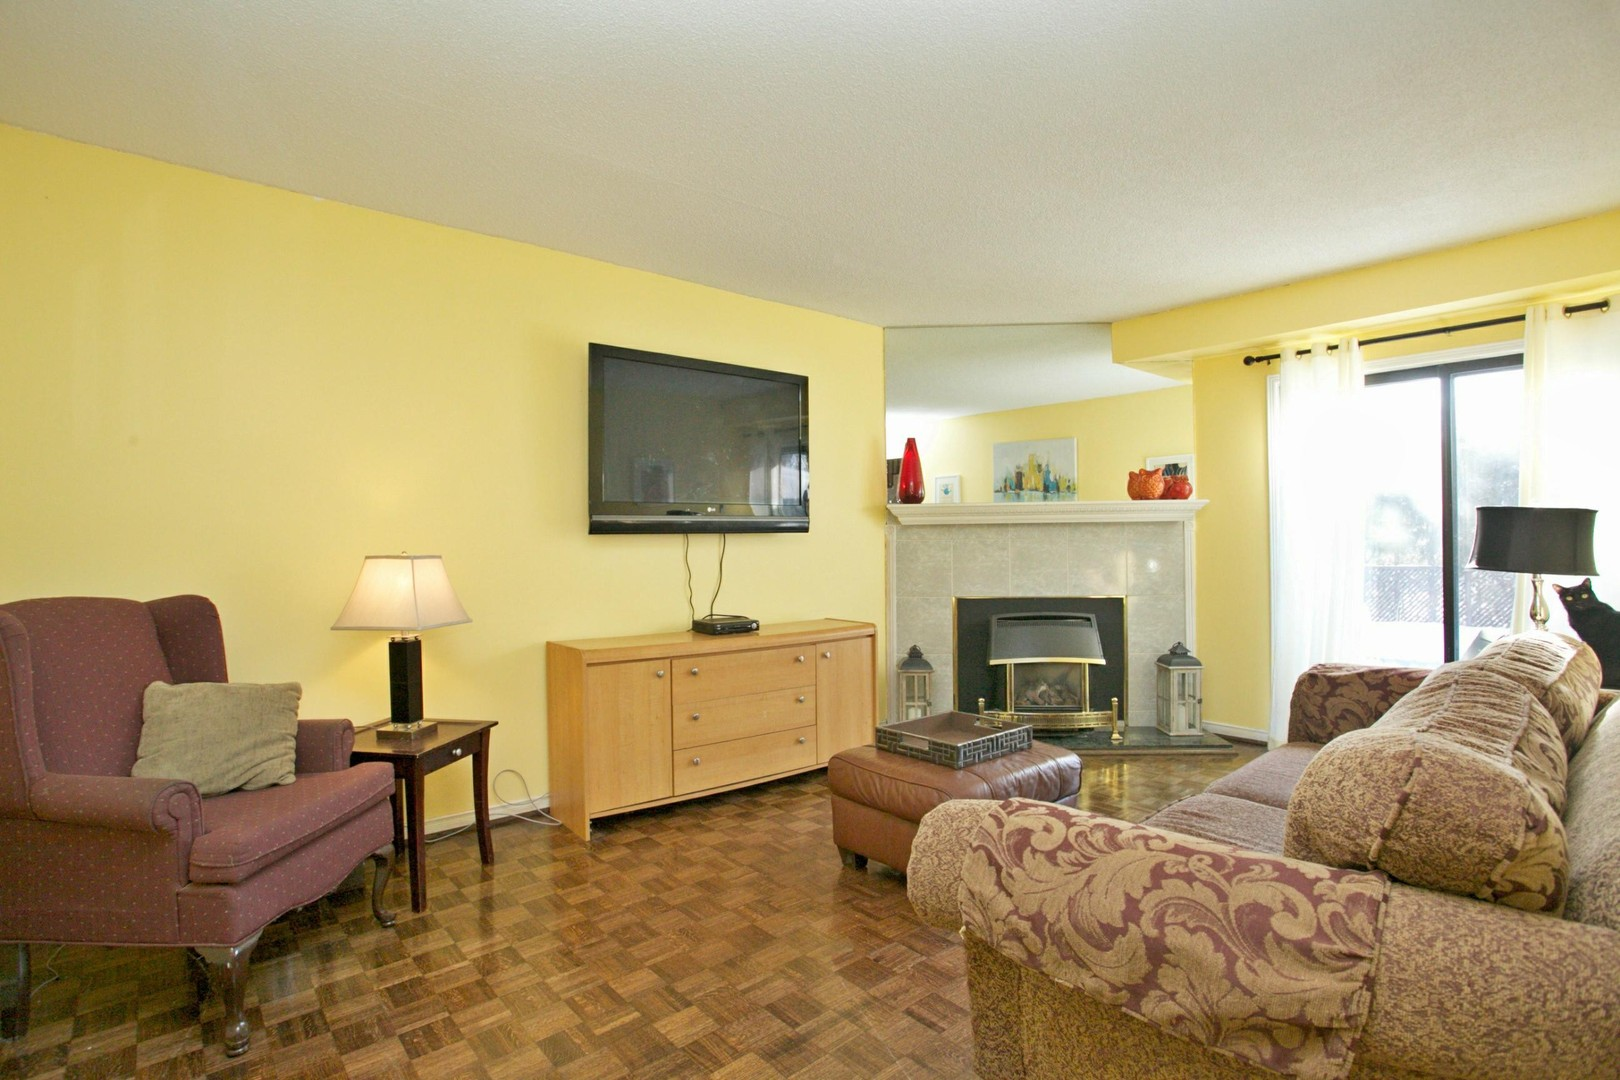 brampton chat rooms Find places to stay in brampton on airbnb  which offers a great opportunity to meet and chat with other people from all over  the room is very clean and .